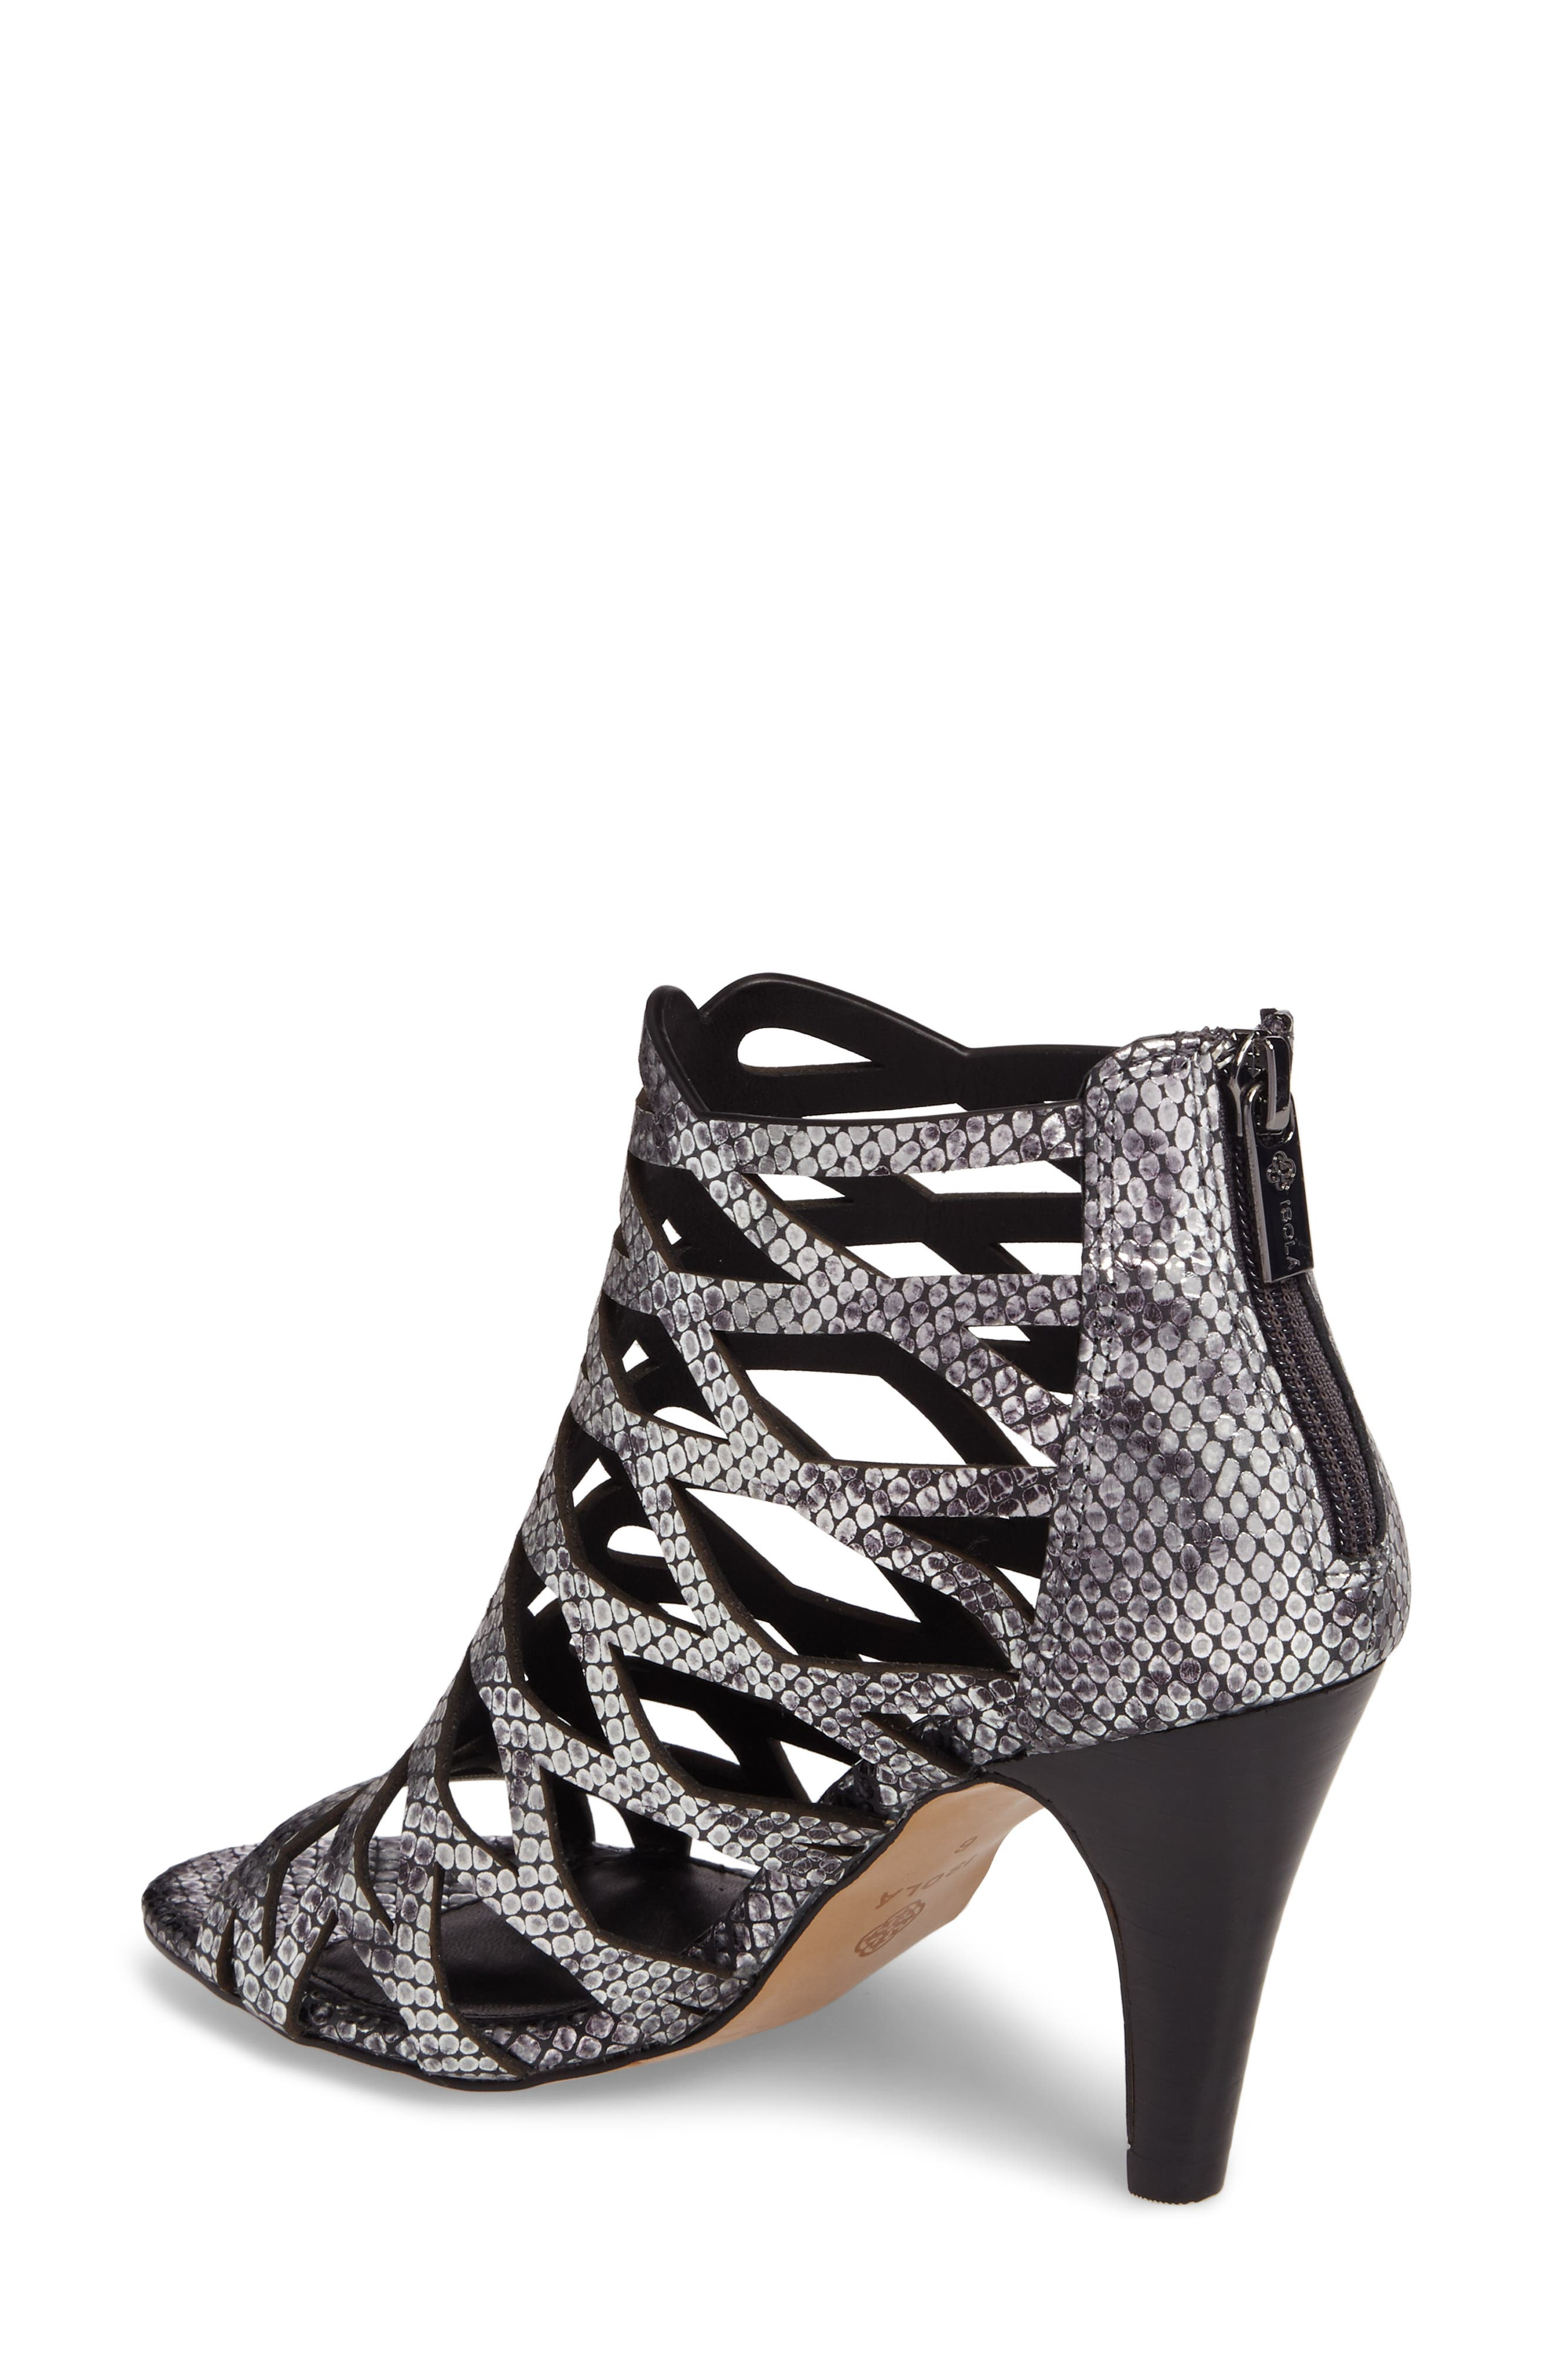 Debra Cage Sandal,                             Alternate thumbnail 2, color,                             ANTHRACITE SNAKE PRINT LEATHER